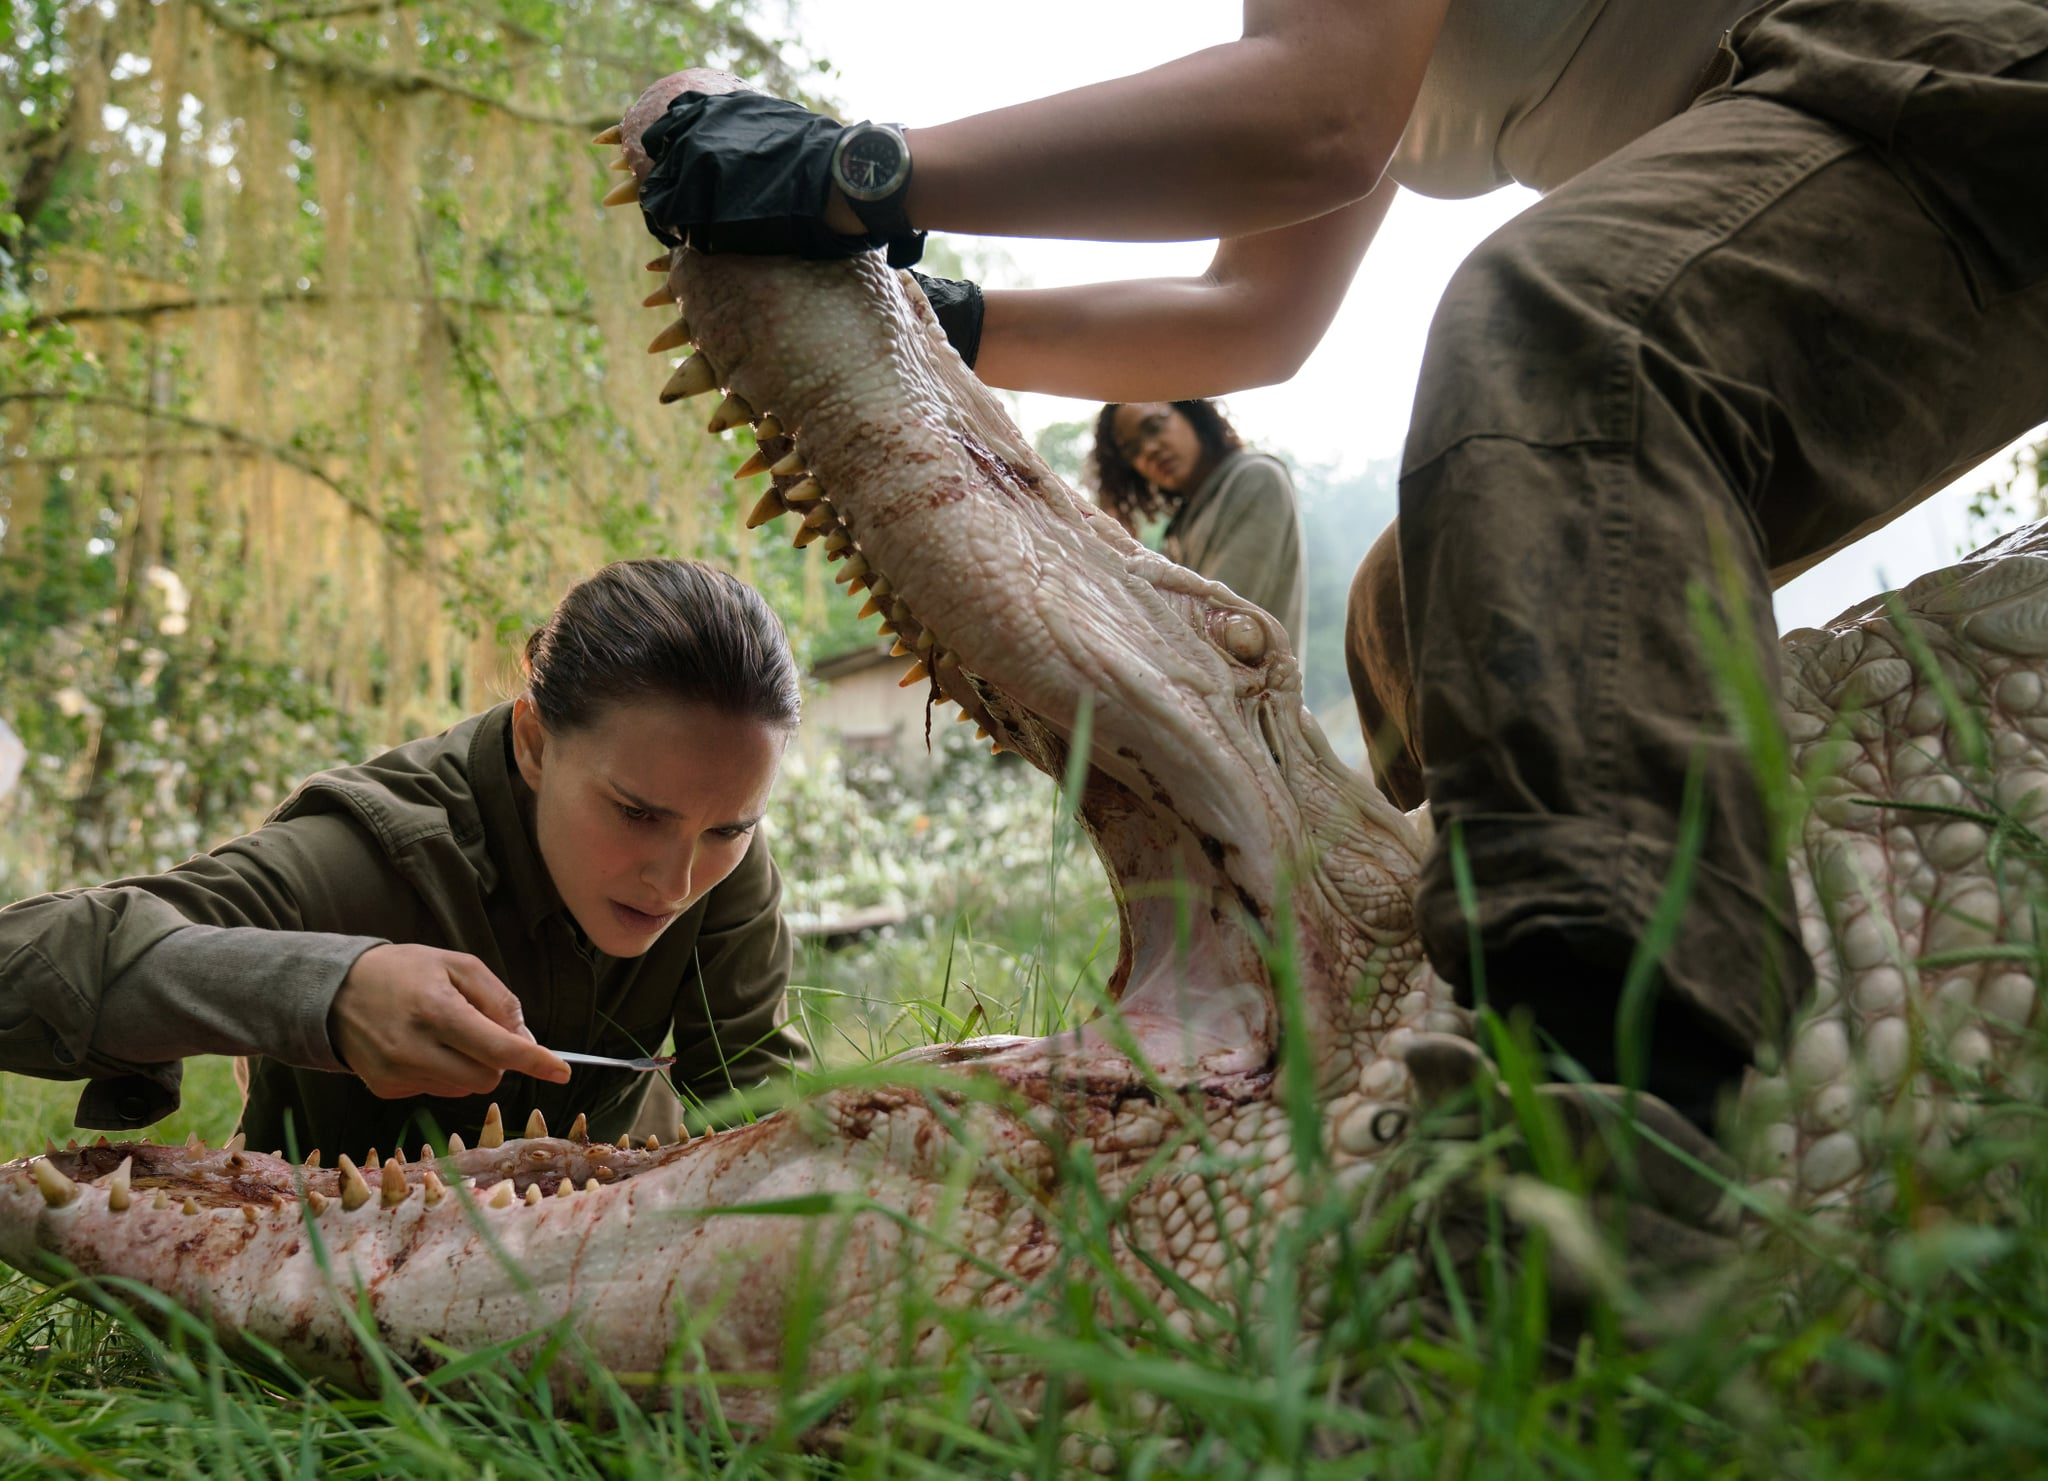 Go Behind The Scenes of Natalie Portman's 'Annihilation'